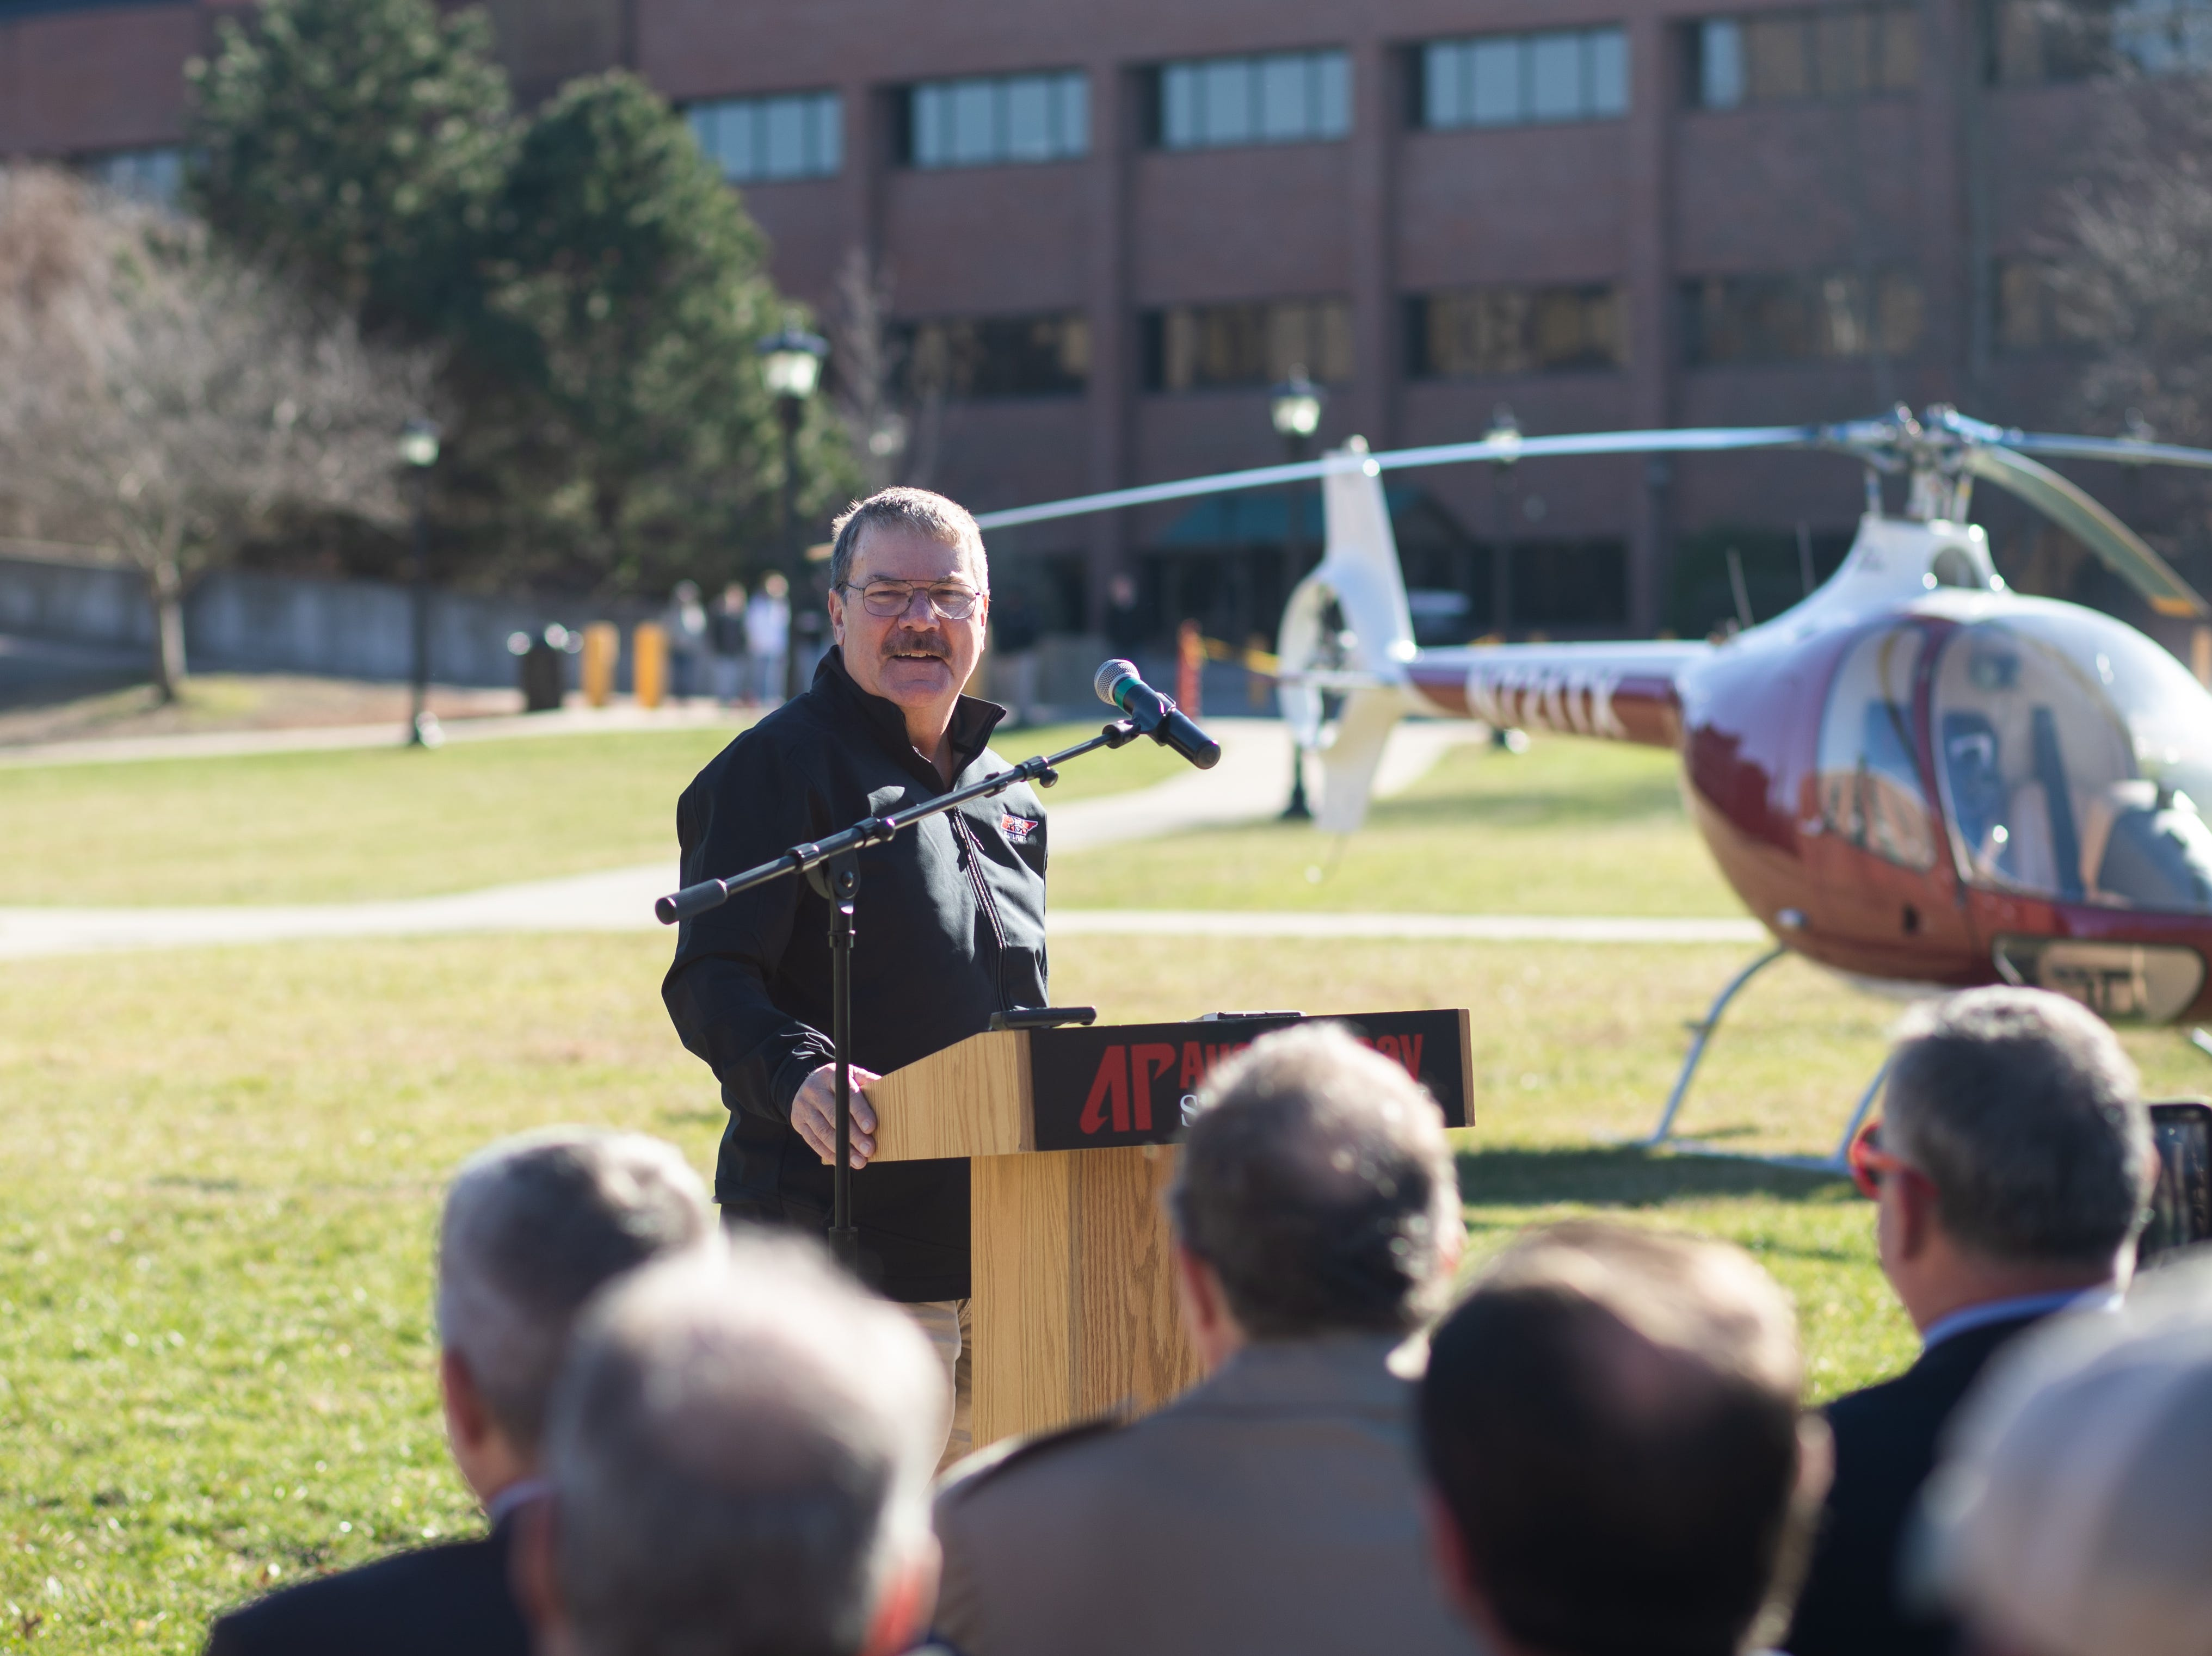 Charles Weigandt talks to the crowd after landing the GOV 1 helicopter at Austin Peay State University on Wednesday, Jan. 9, 2019.